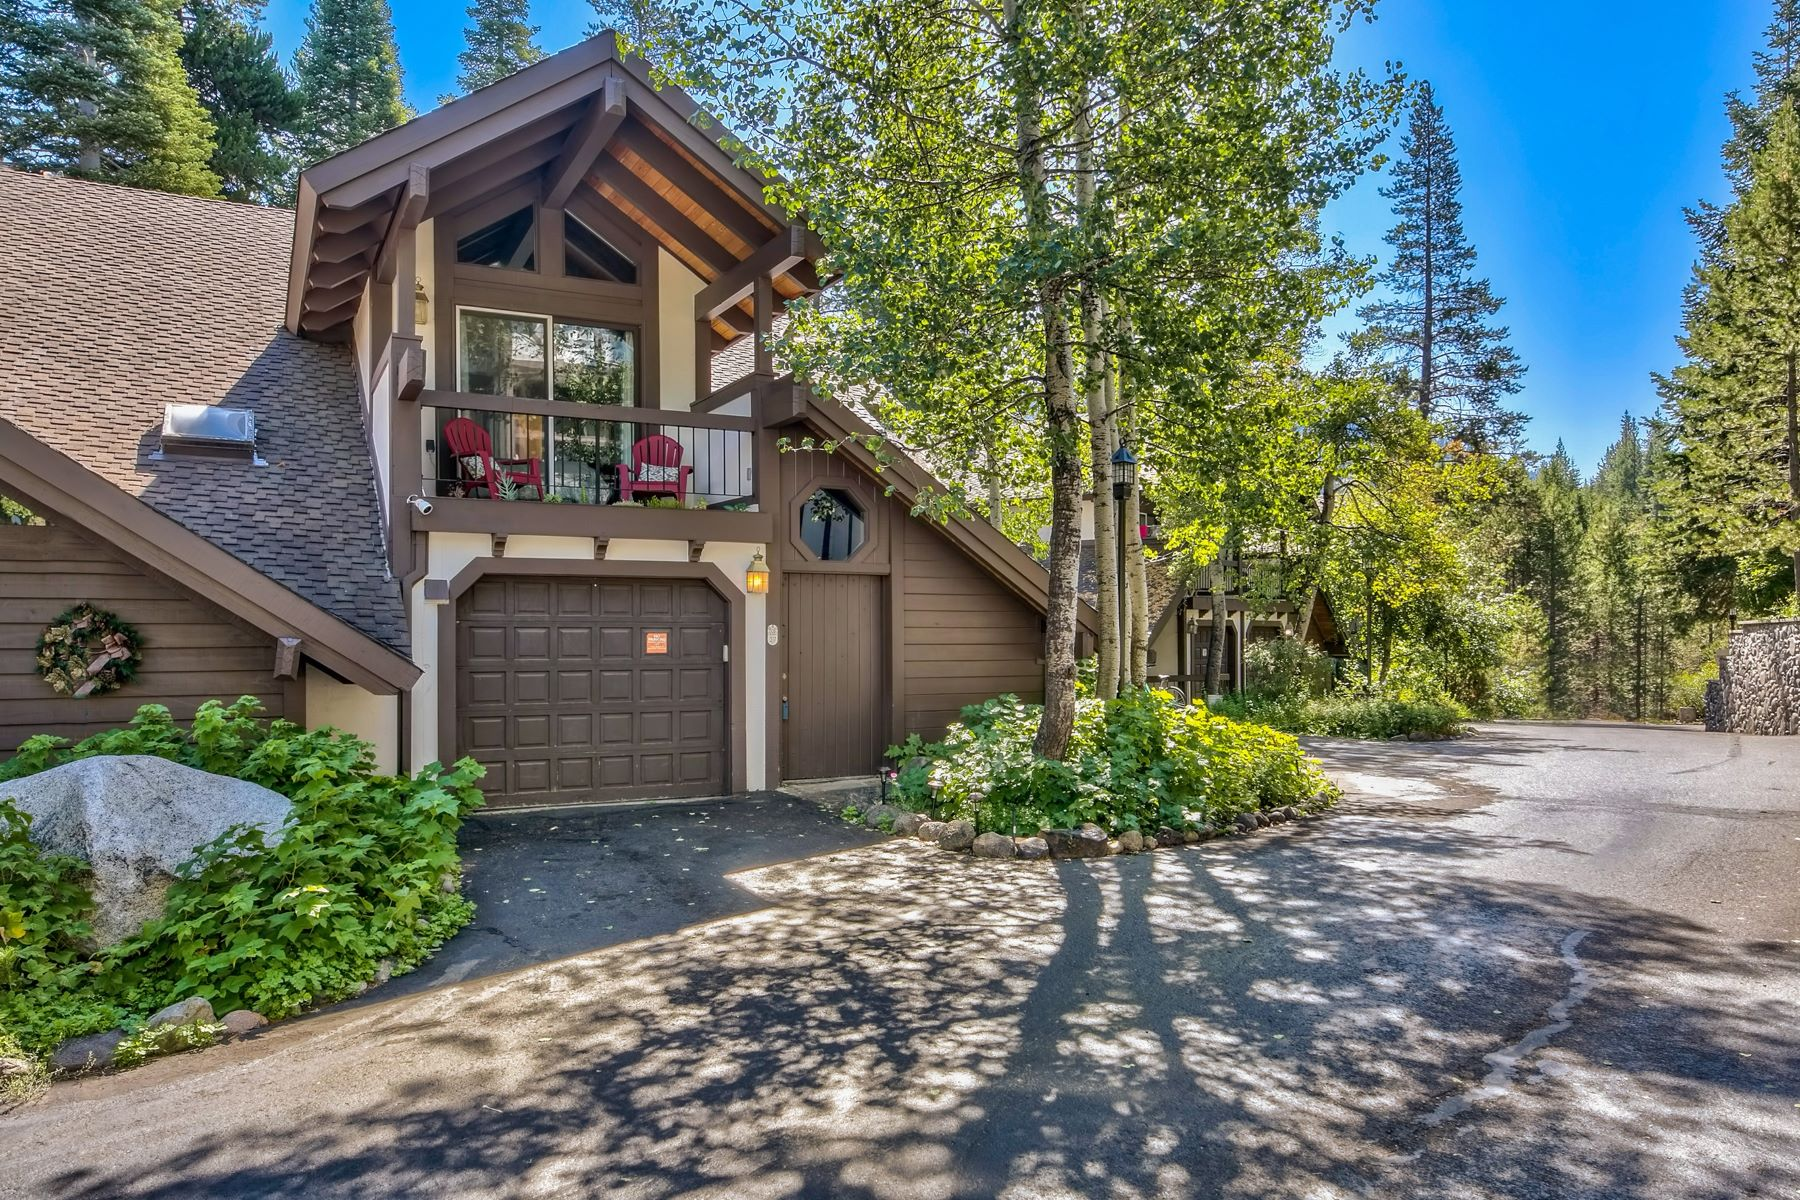 Additional photo for property listing at 227 Squaw Valley Rd. #27, Olympic Valley 227 Squaw Valley Road #27 Olympic Valley, California 96146 Estados Unidos